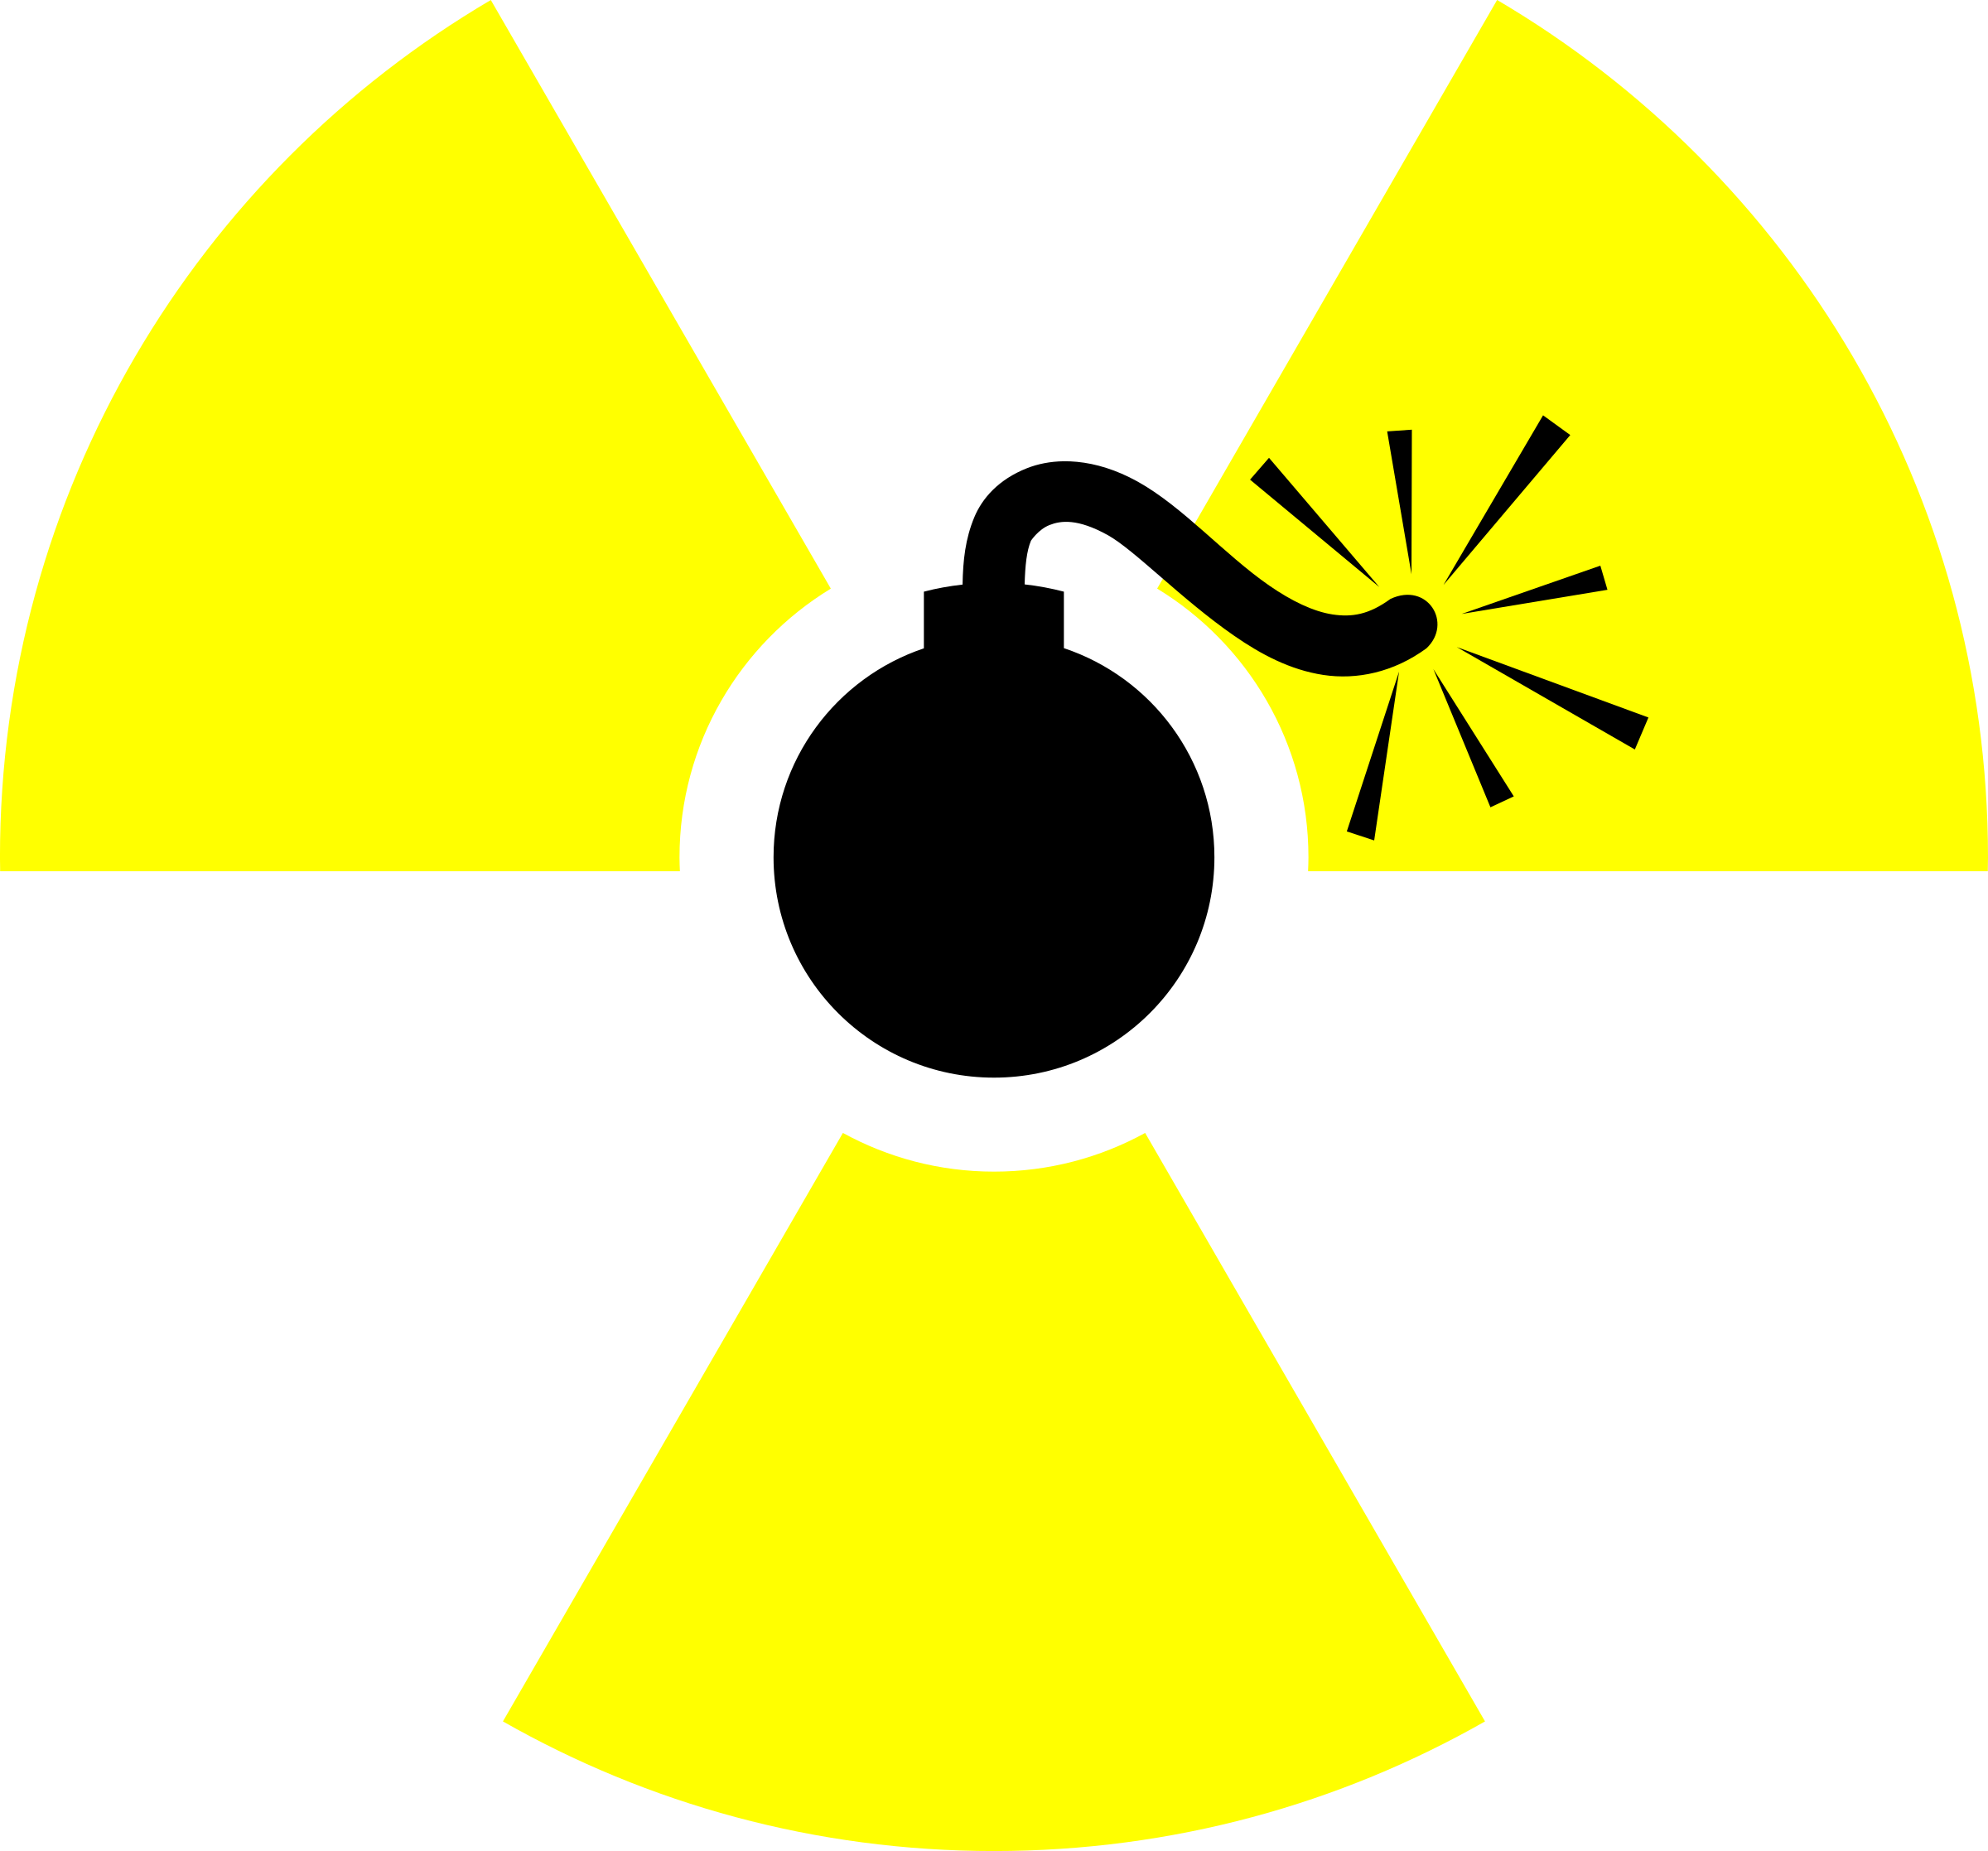 Sun radiation clipart image library Atomic Bomb Clipart & Look At Atomic Bomb Clip Art Images ... image library